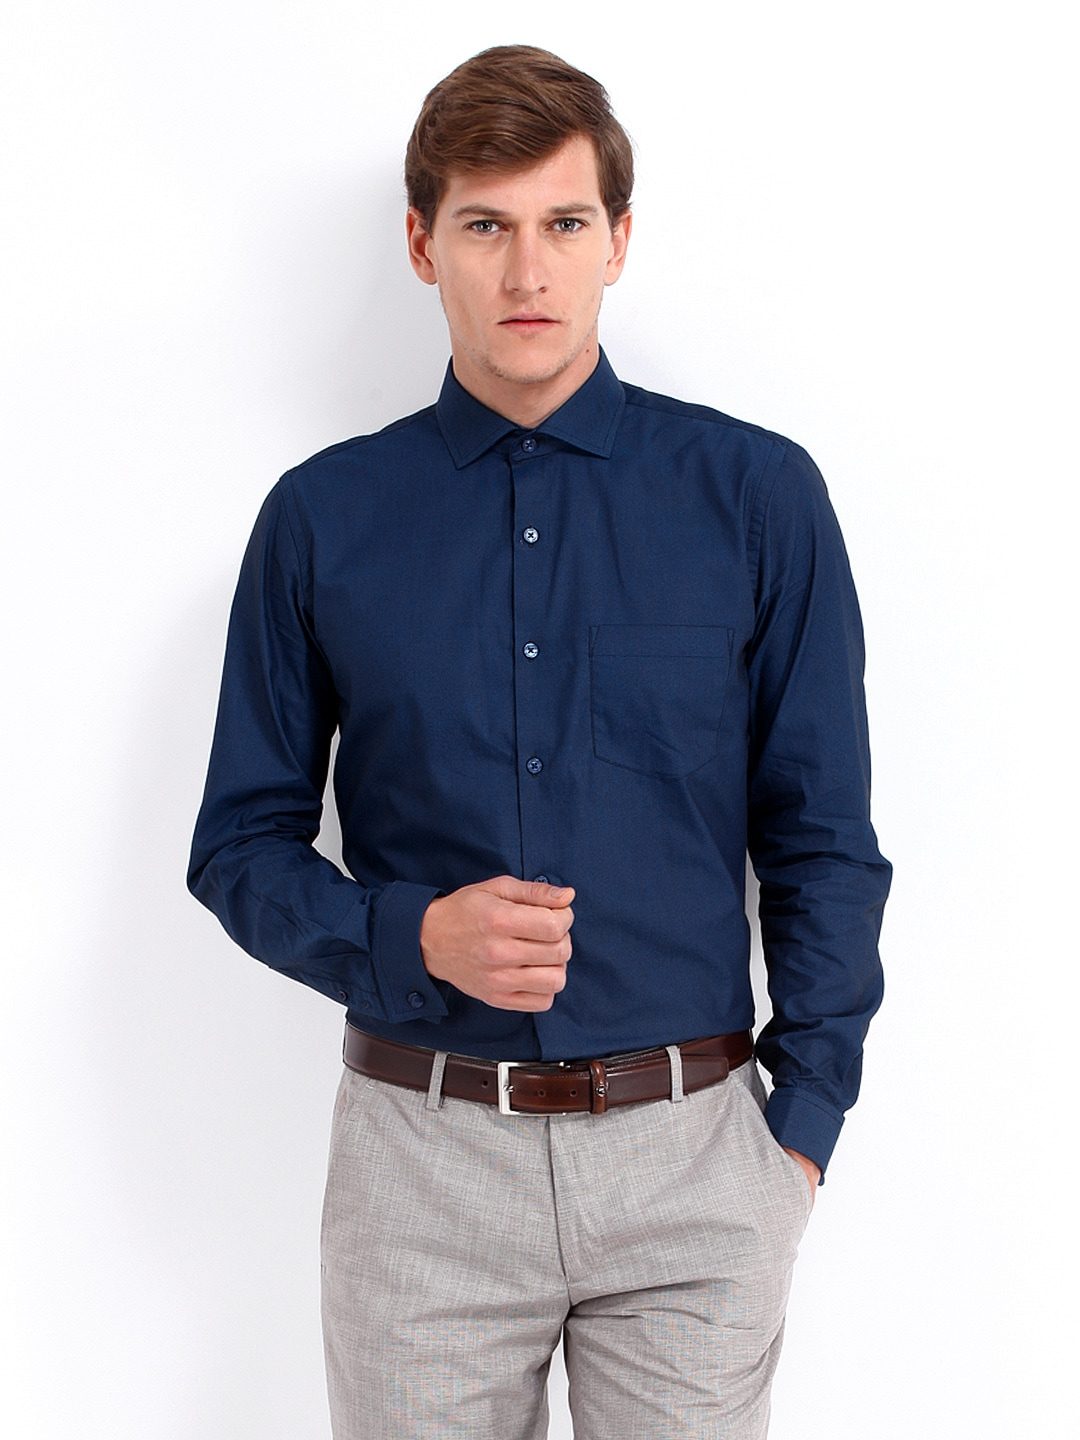 The Gallery For Formal Blue Shirt For Men